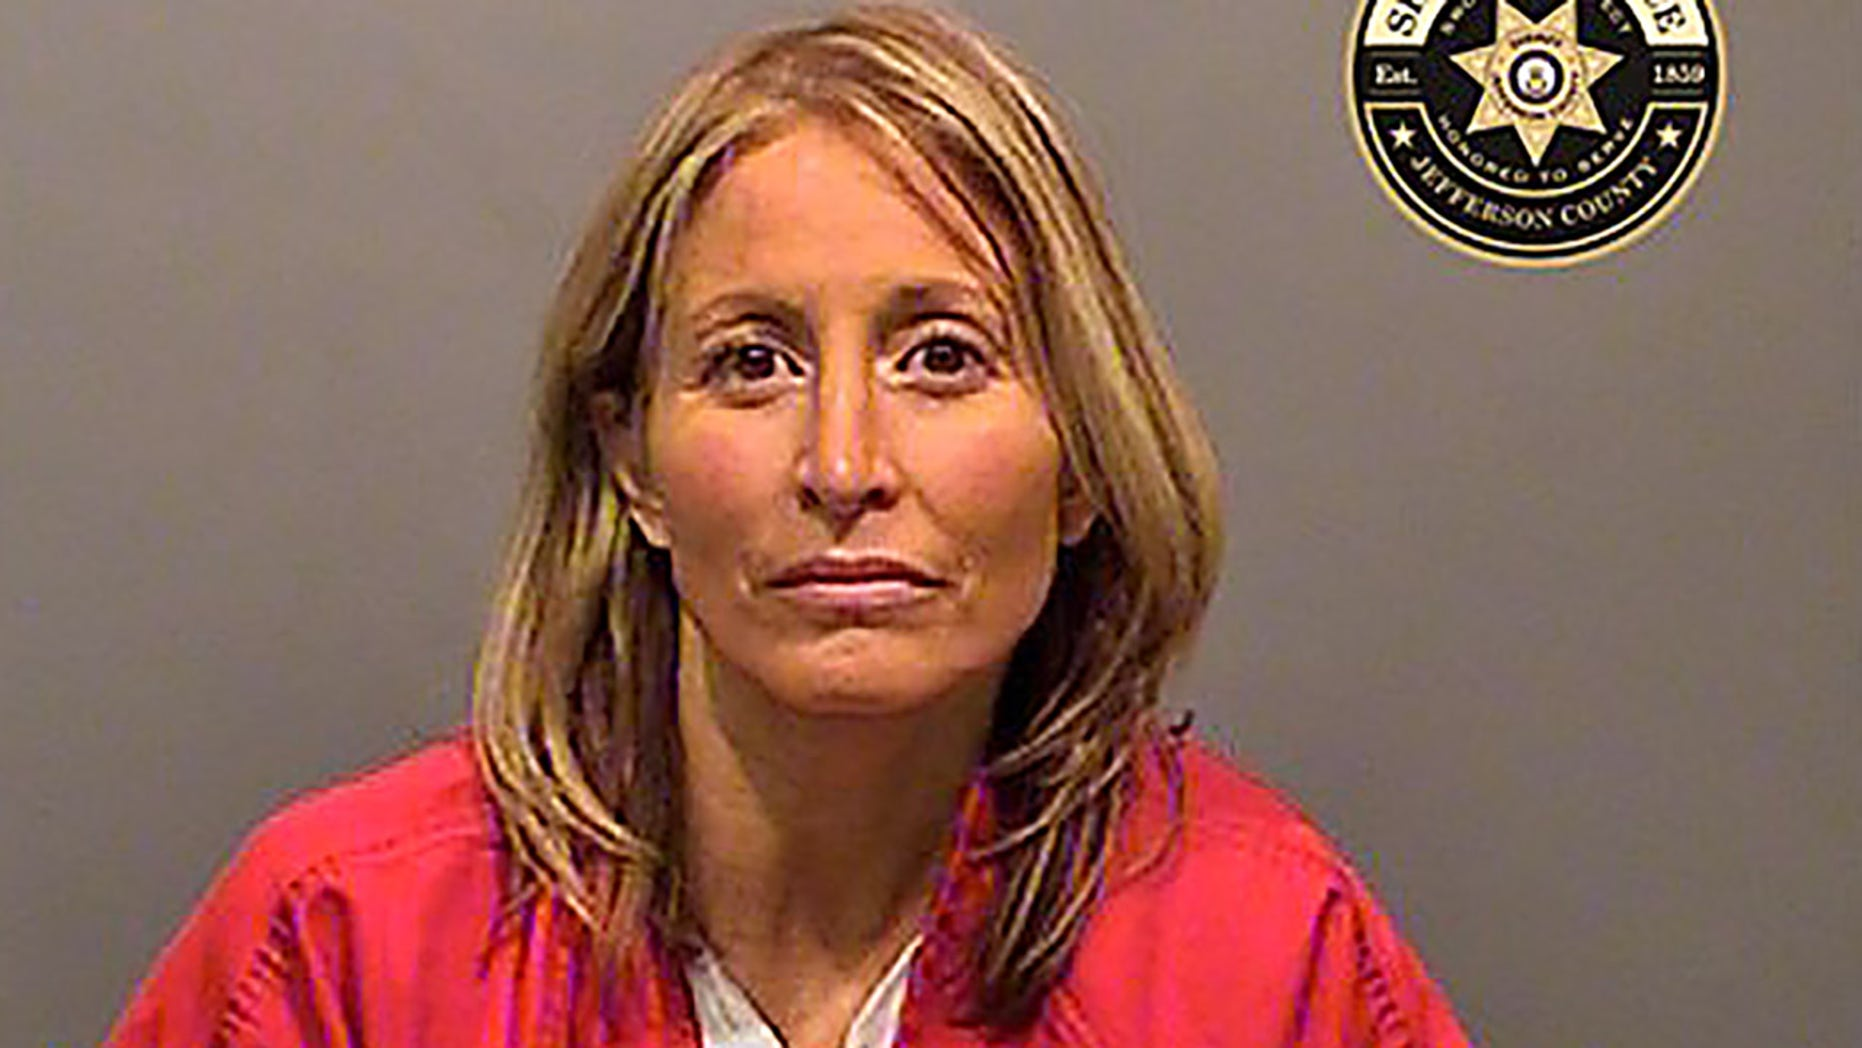 A famous animal rights attorney was plotting to murder this woman